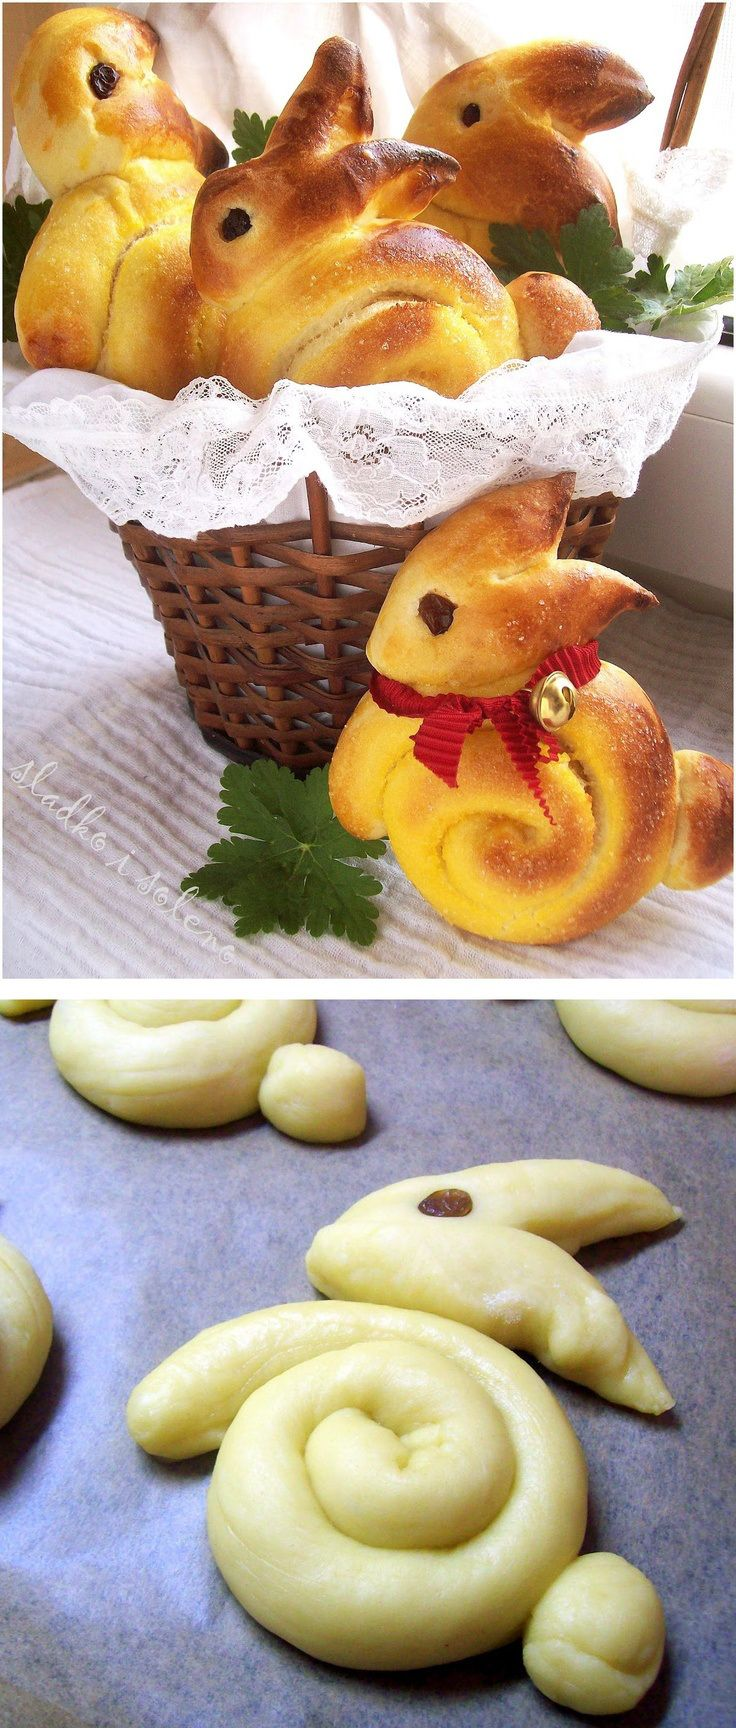 Easy and creative bread recipe for easter 2 recepty pinterest easy and creative bread recipe for easter 2 negle Images